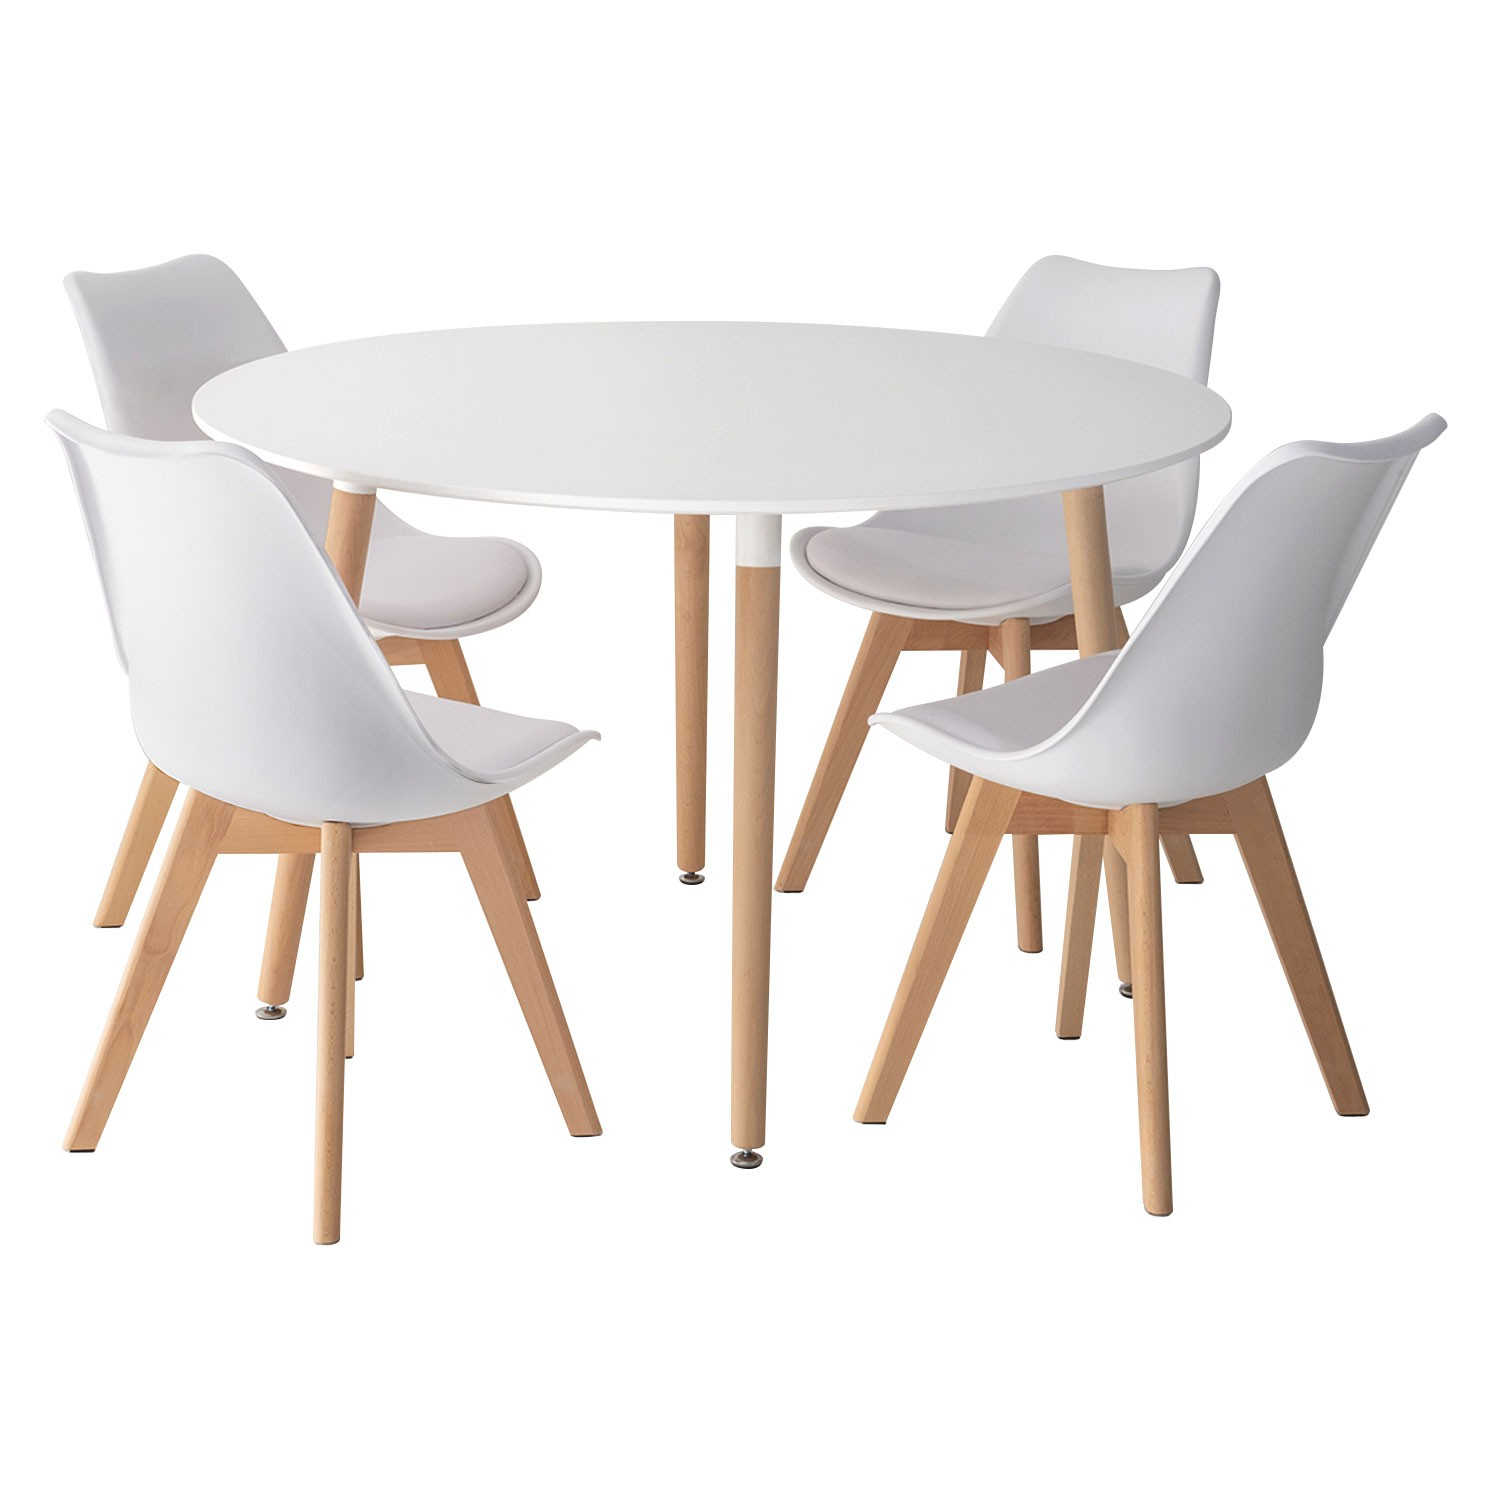 Table et chaises scandinaves blanches liz happy garden - Ensemble chaise et table ...